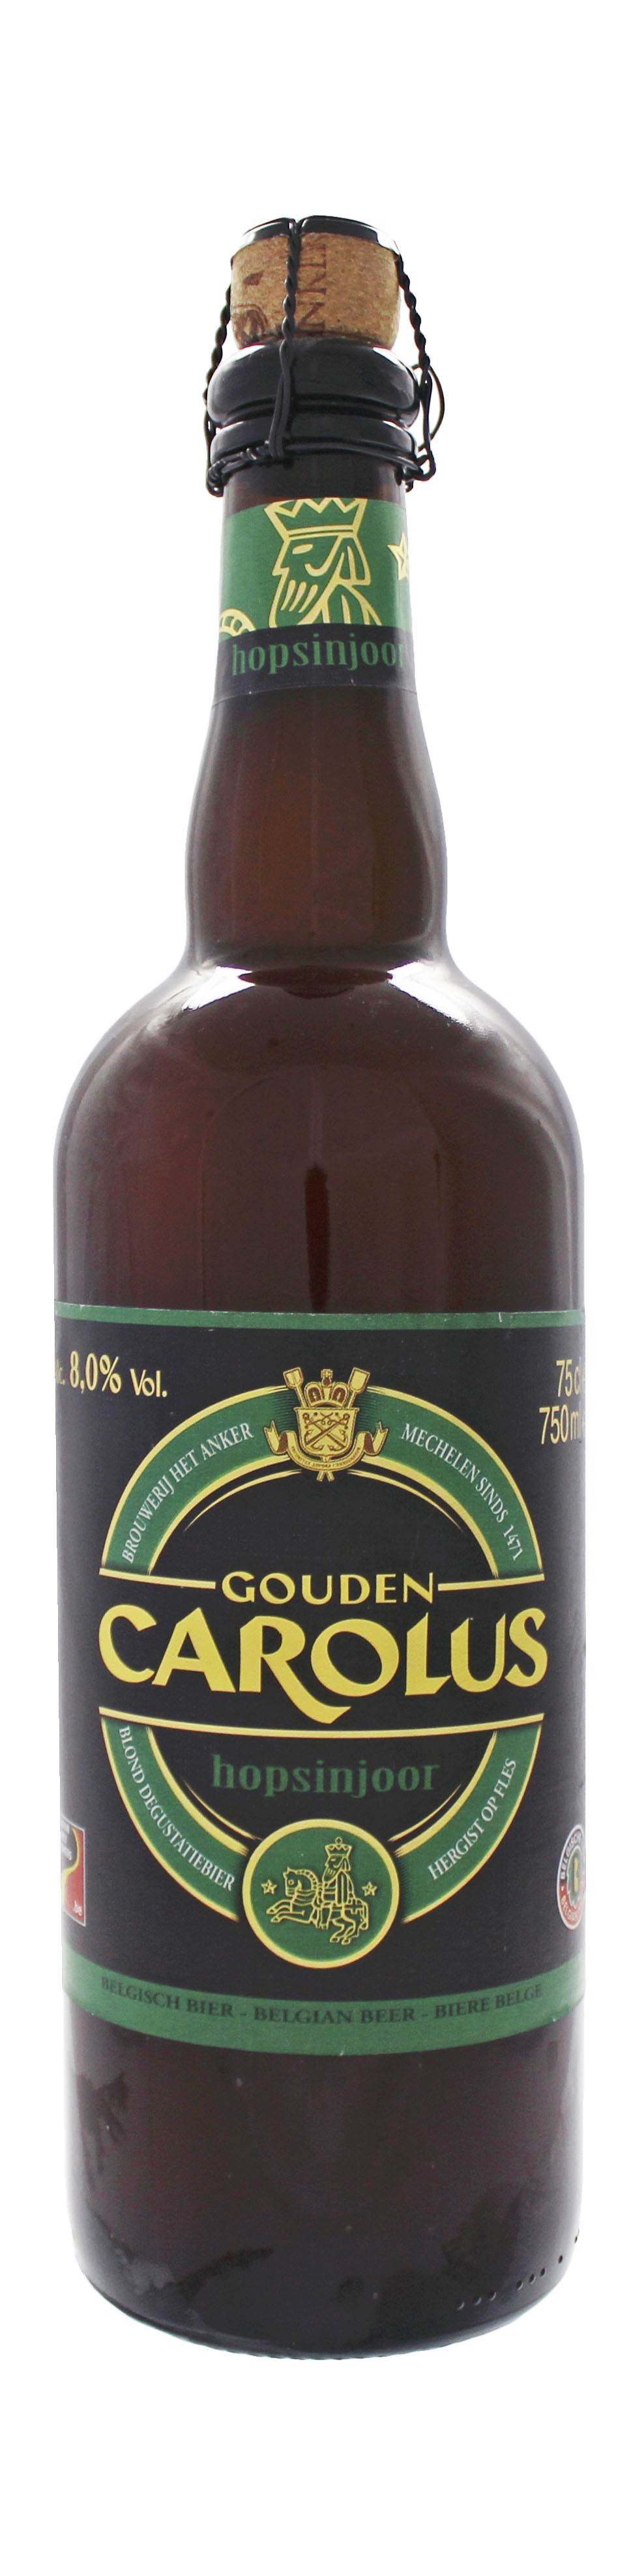 Photo de face de Gouden Carolus Hopsinjoor